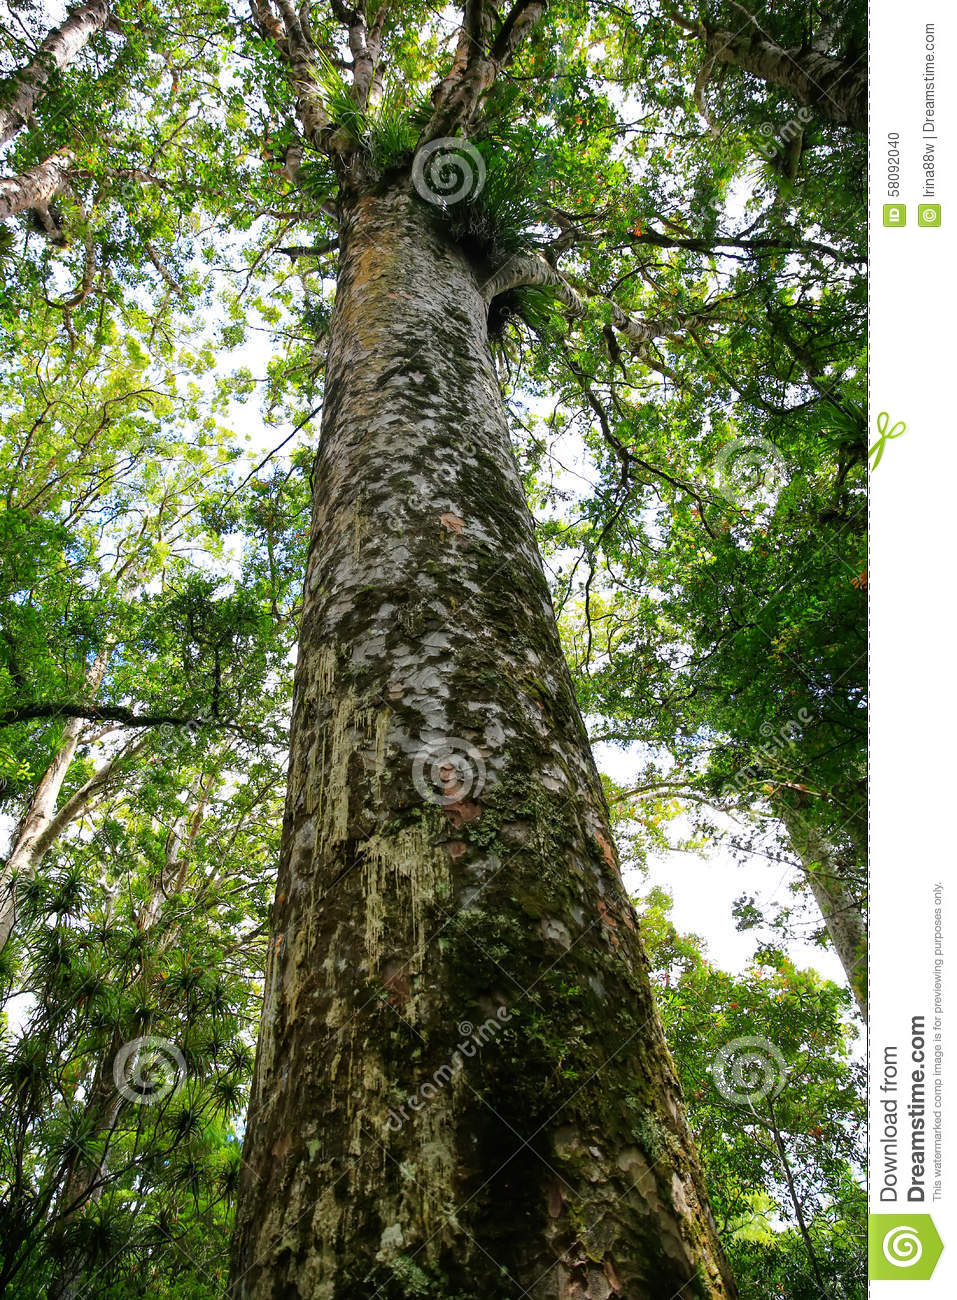 Very Tall Tree Towering Above Thre Land In New Zealnd. Stock Photo.